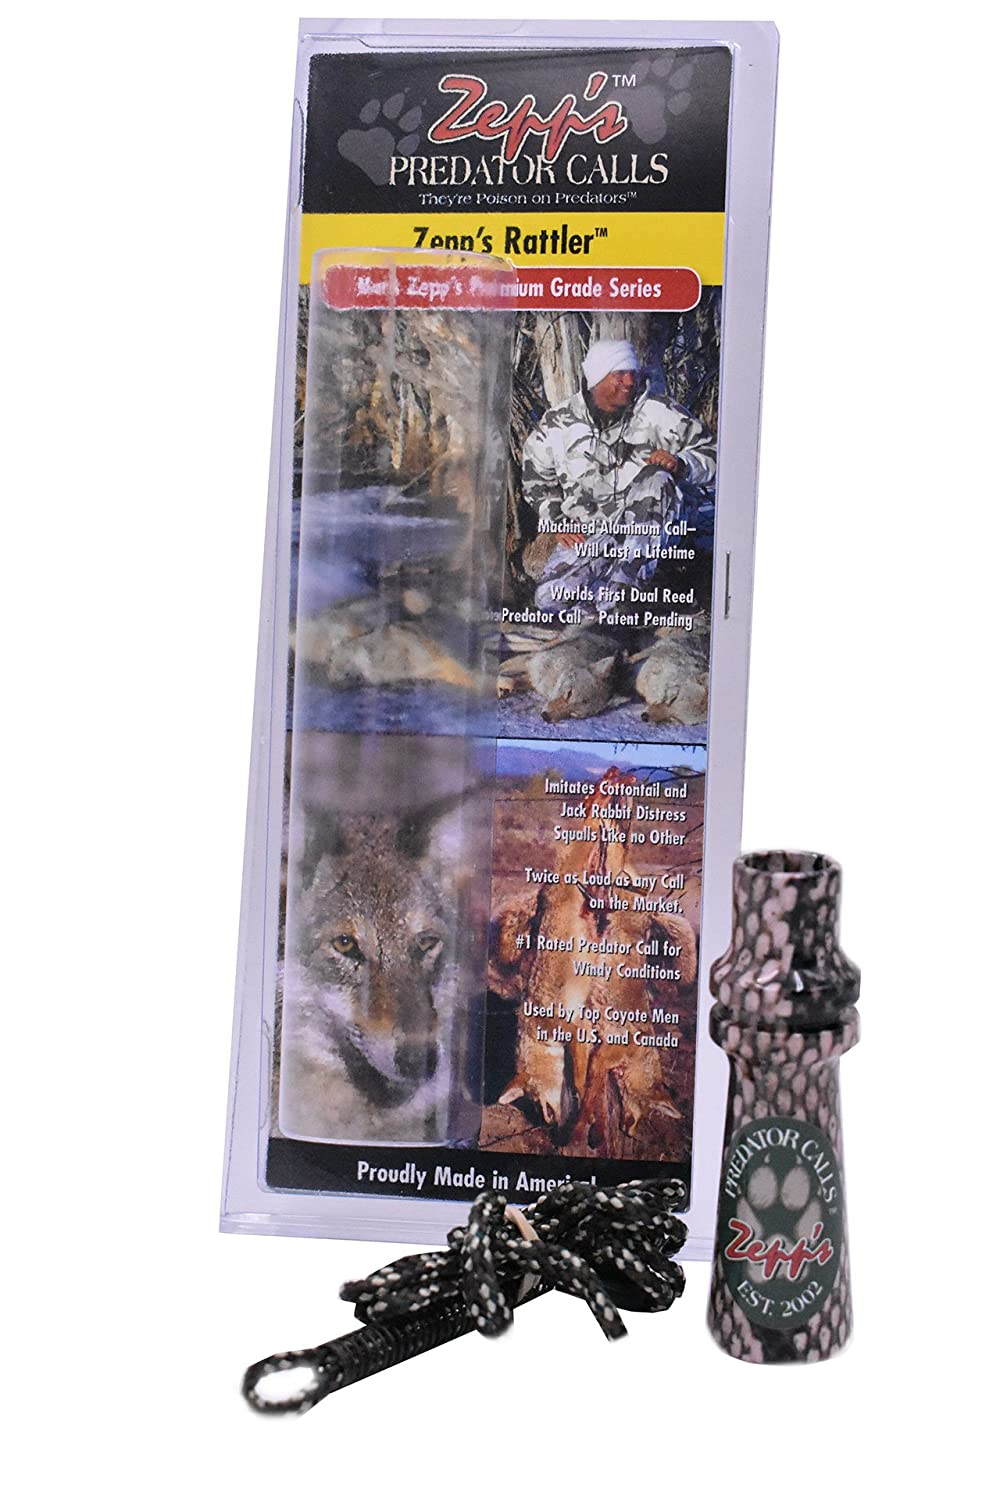 Amazon.com : Zepps Predator Calls & Squallers (Zepps Coon Squallers - Lifetime) : Sports & Outdoors